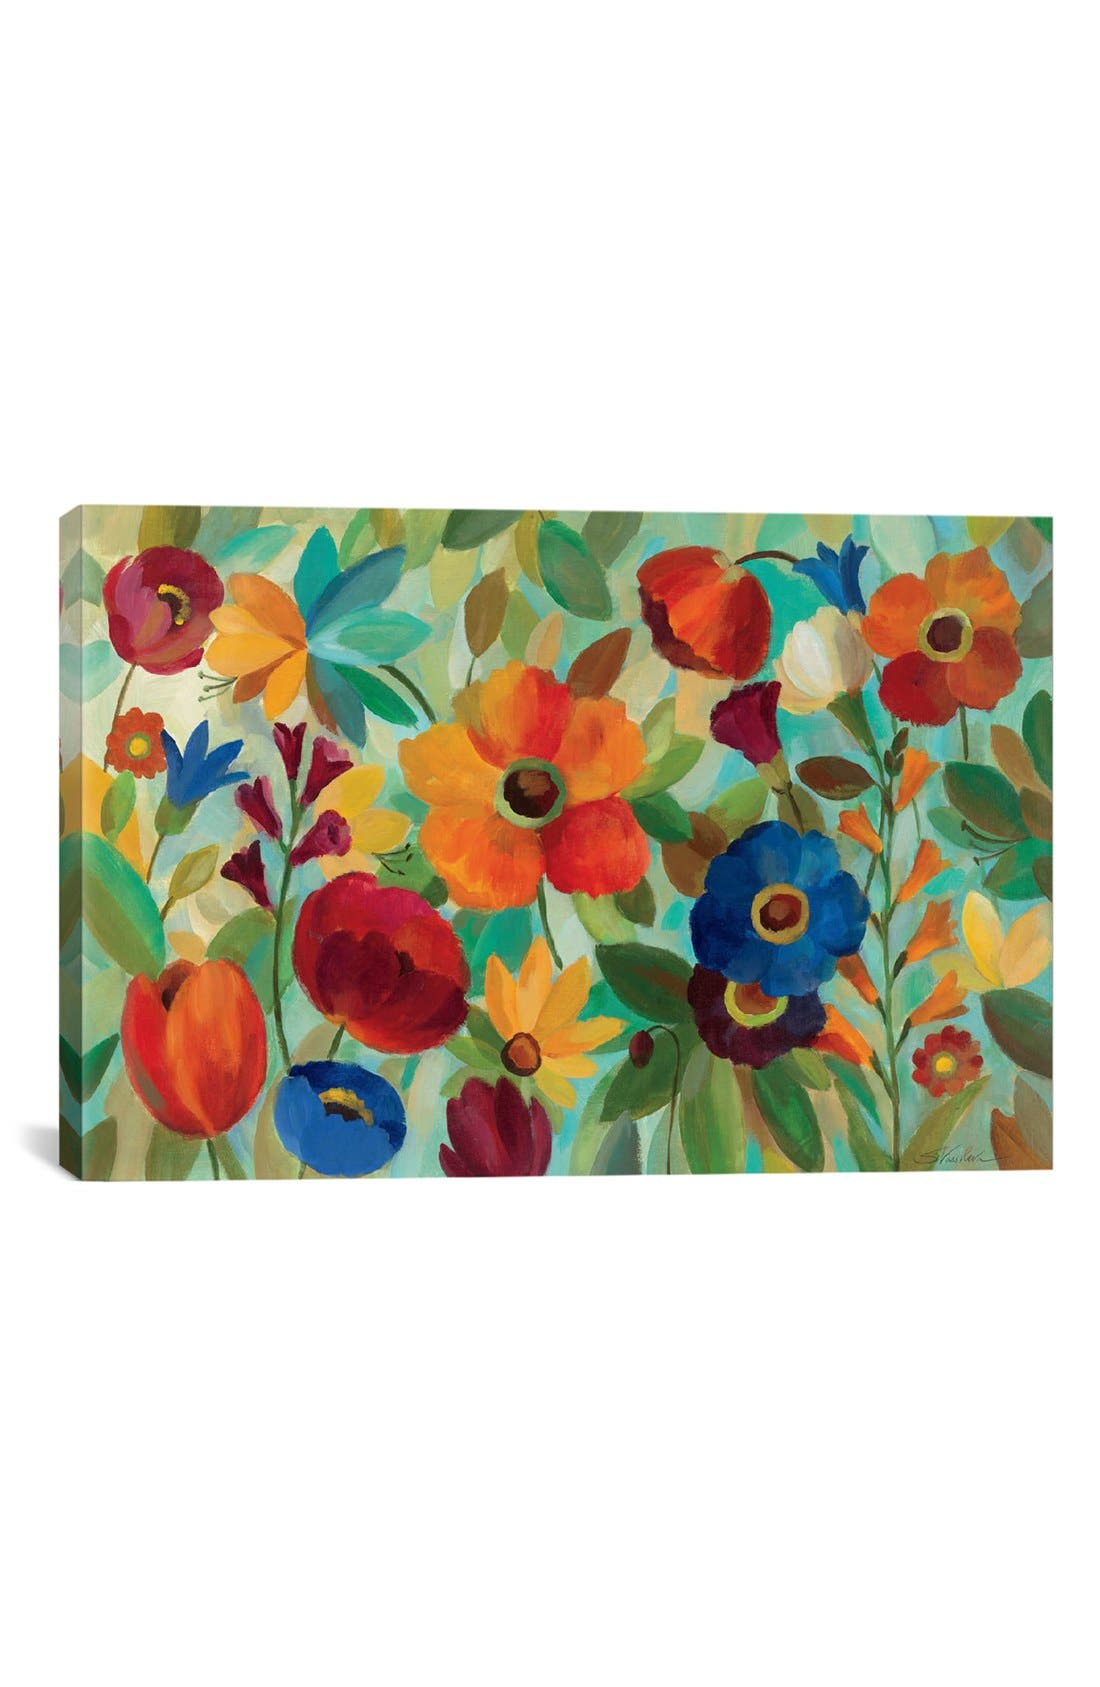 'Summer Floral' Giclée Print Canvas Art,                             Main thumbnail 1, color,                             300